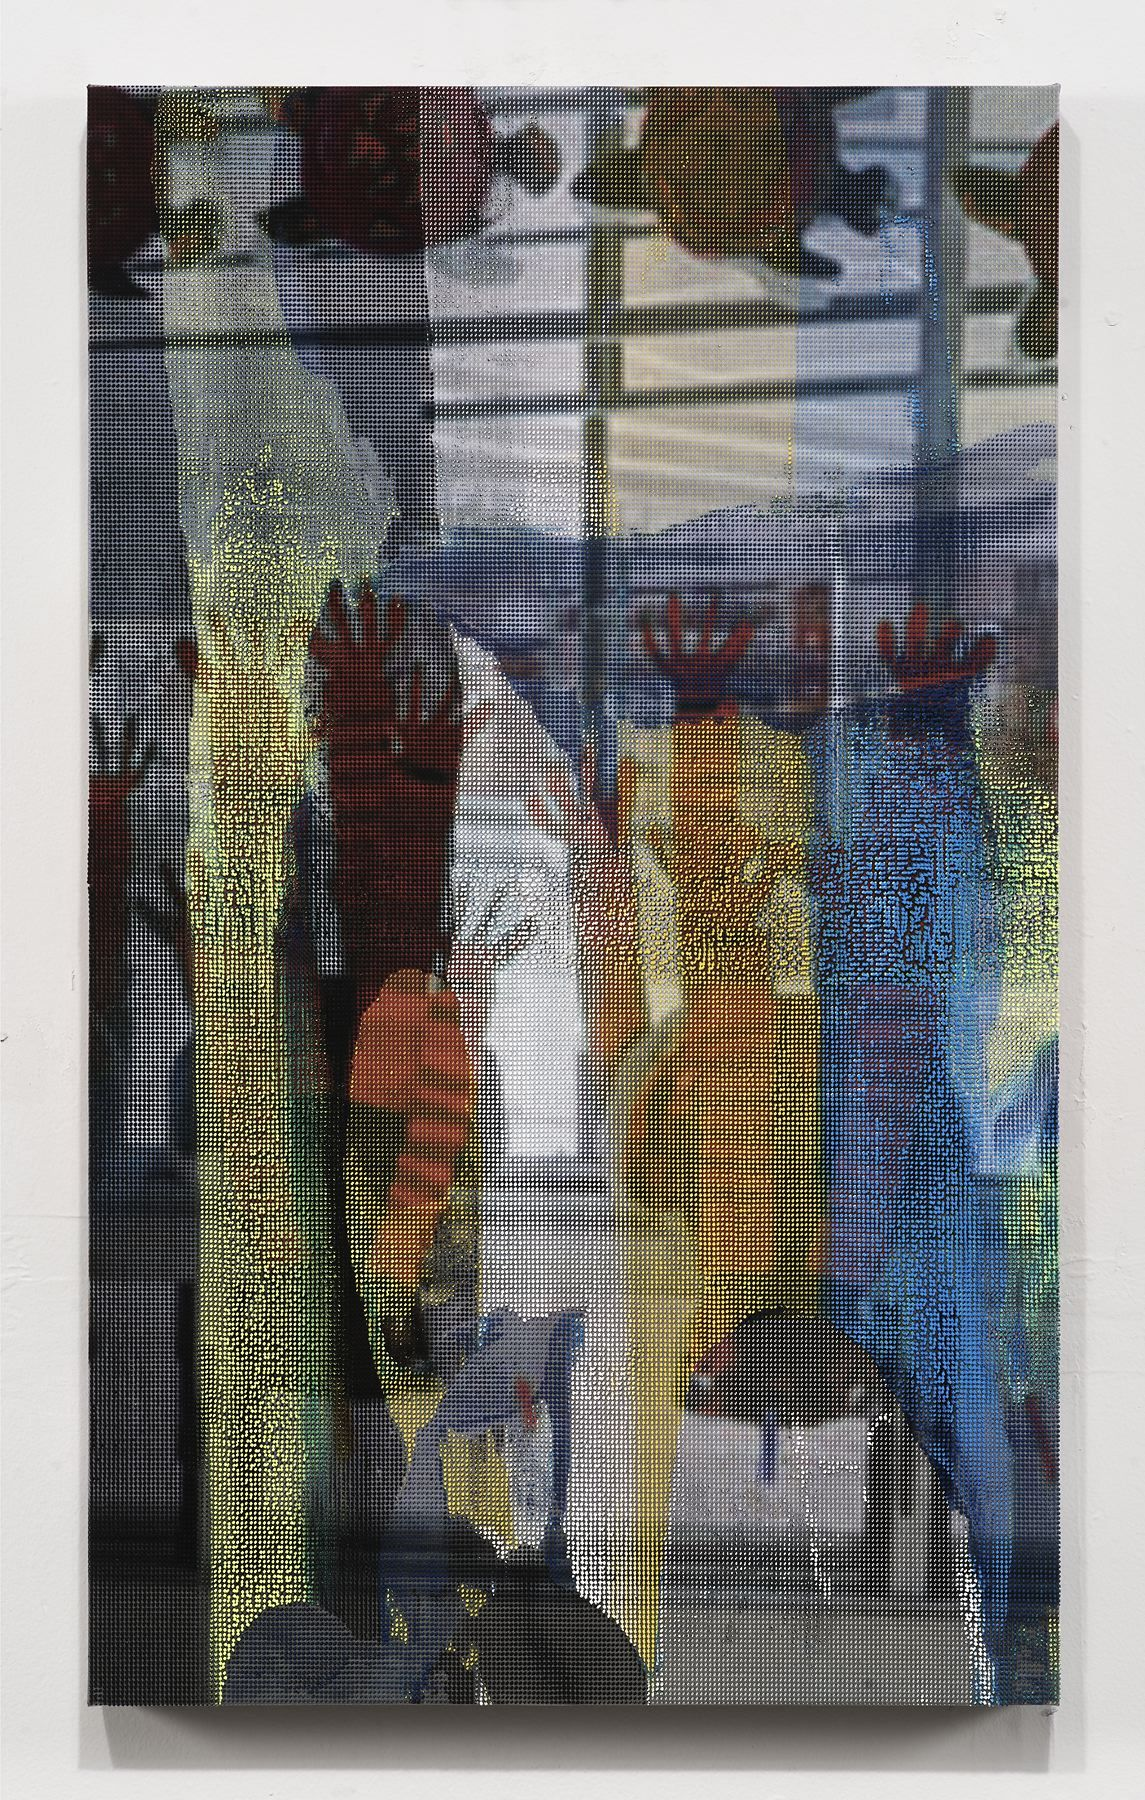 Manifold Painting (Window Display), 2017